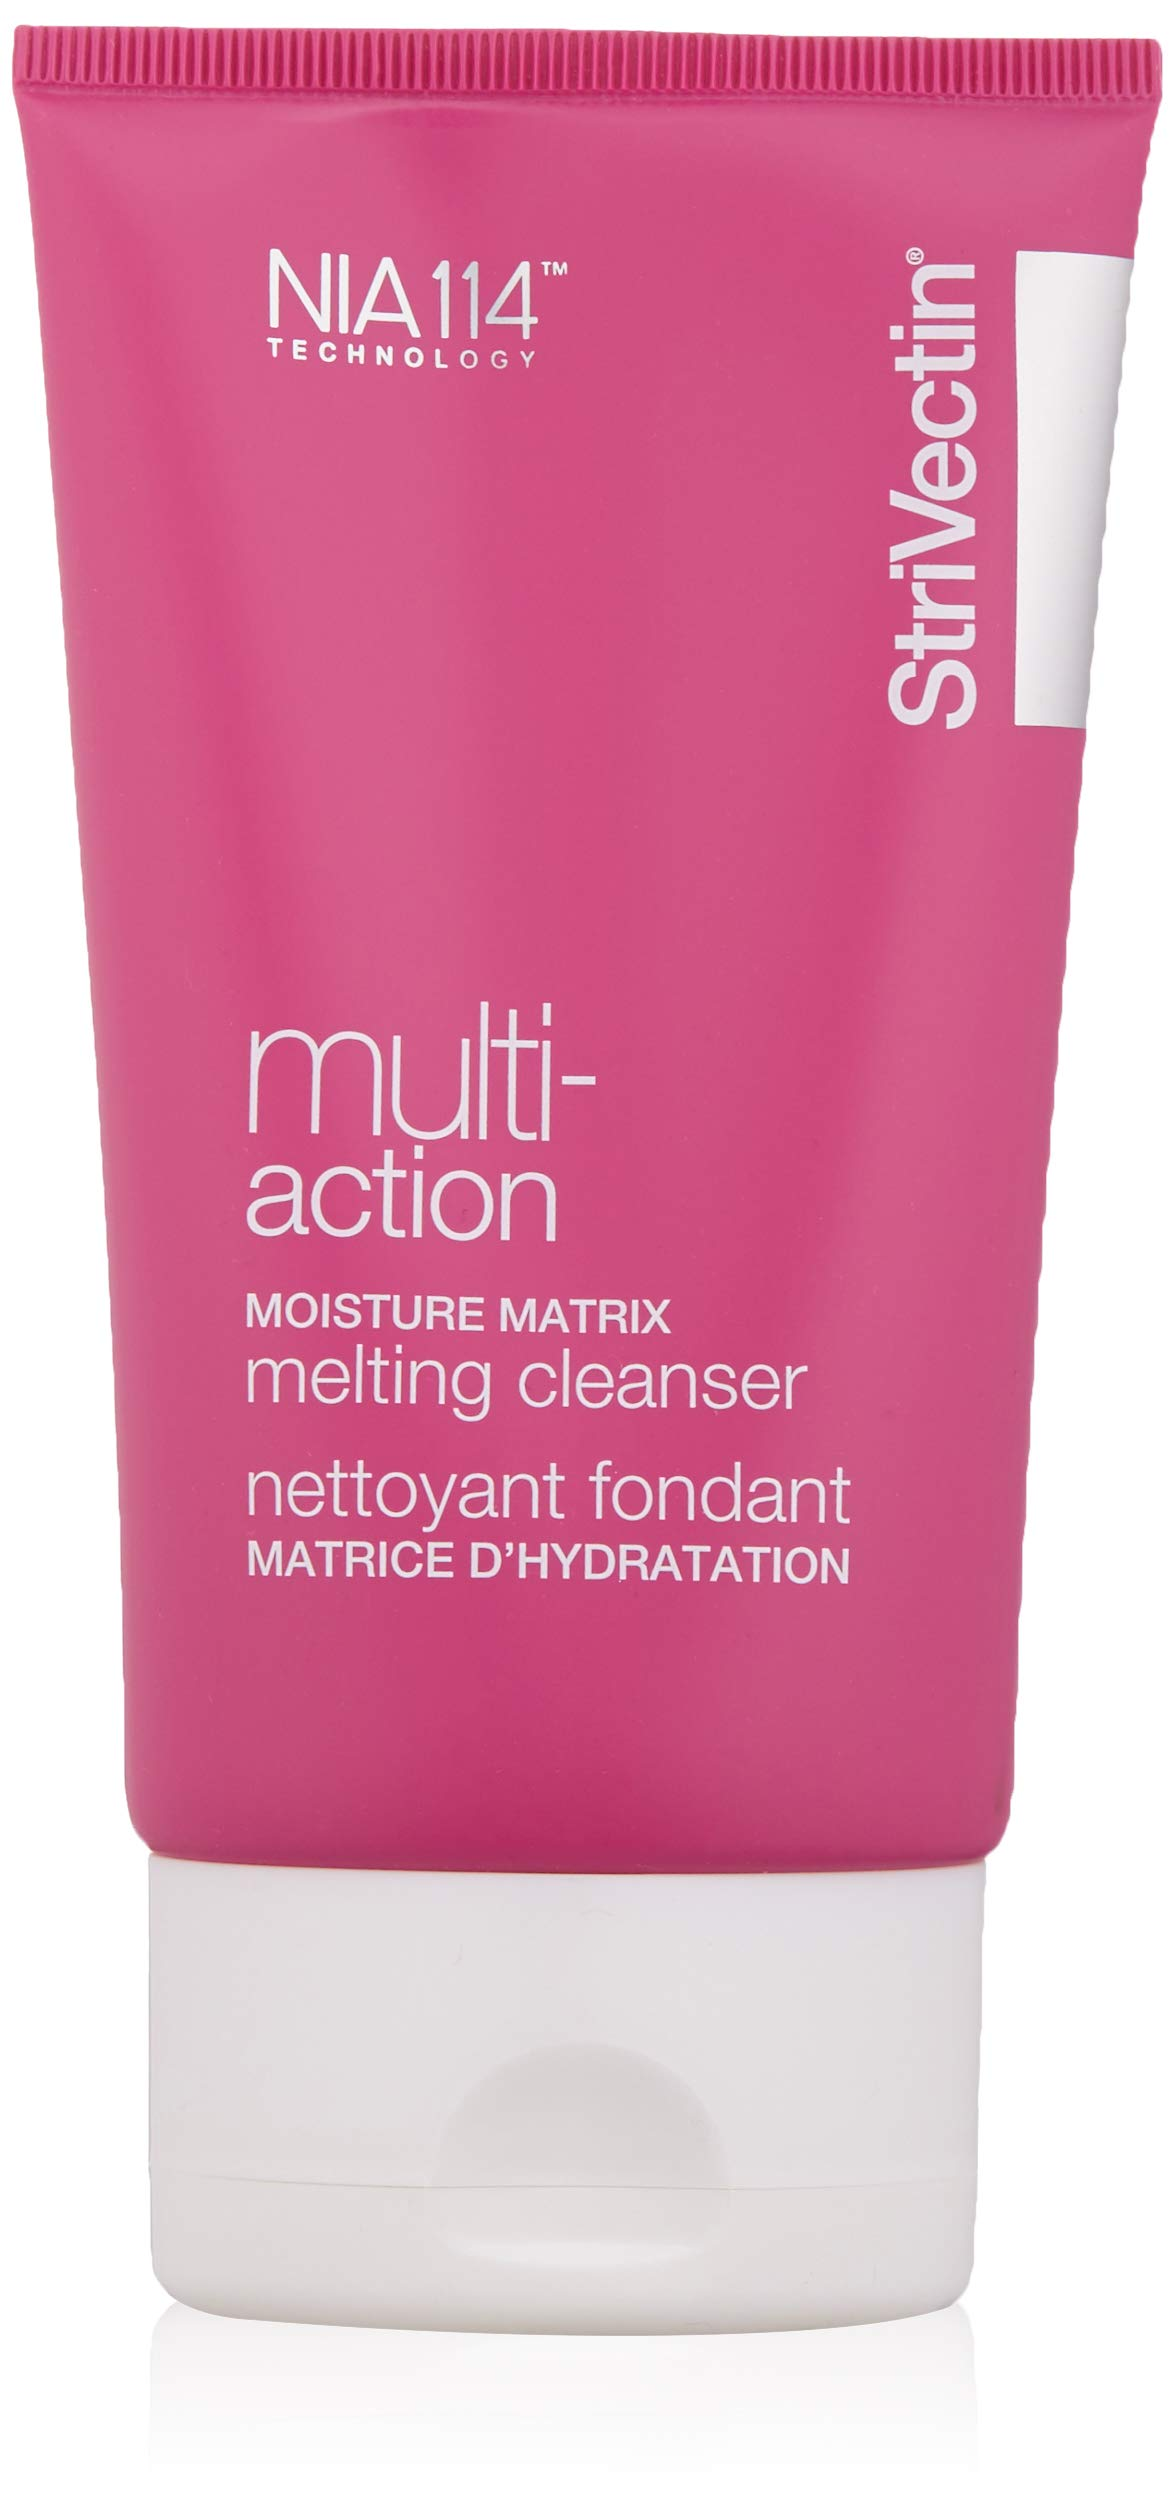 StriVectin Multi-Action Moisture Matrix Cleanser